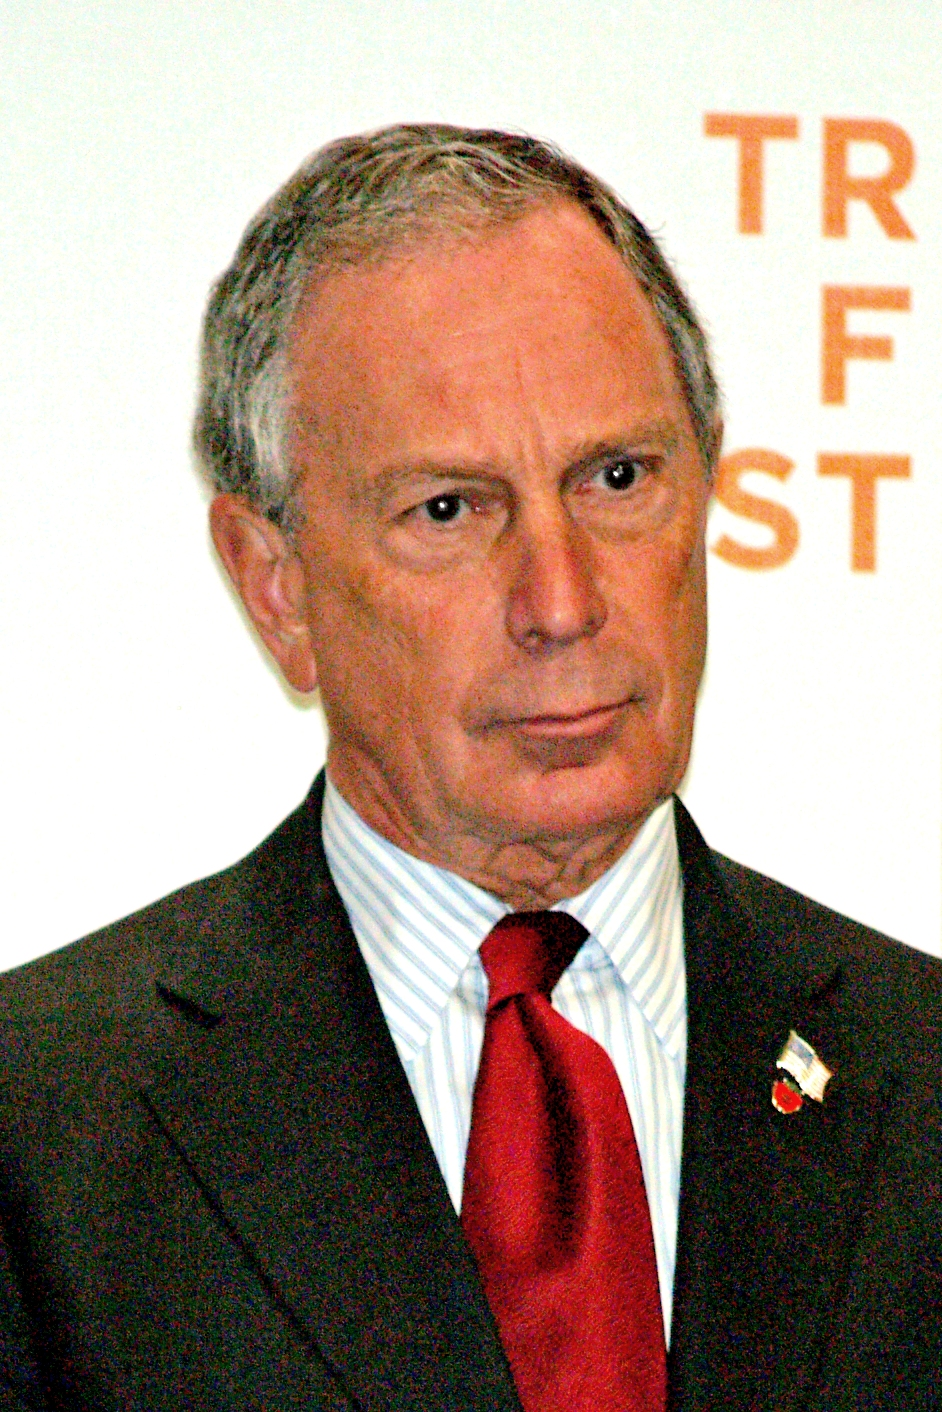 Bloomberg to Donate $4.5M For Climate Change